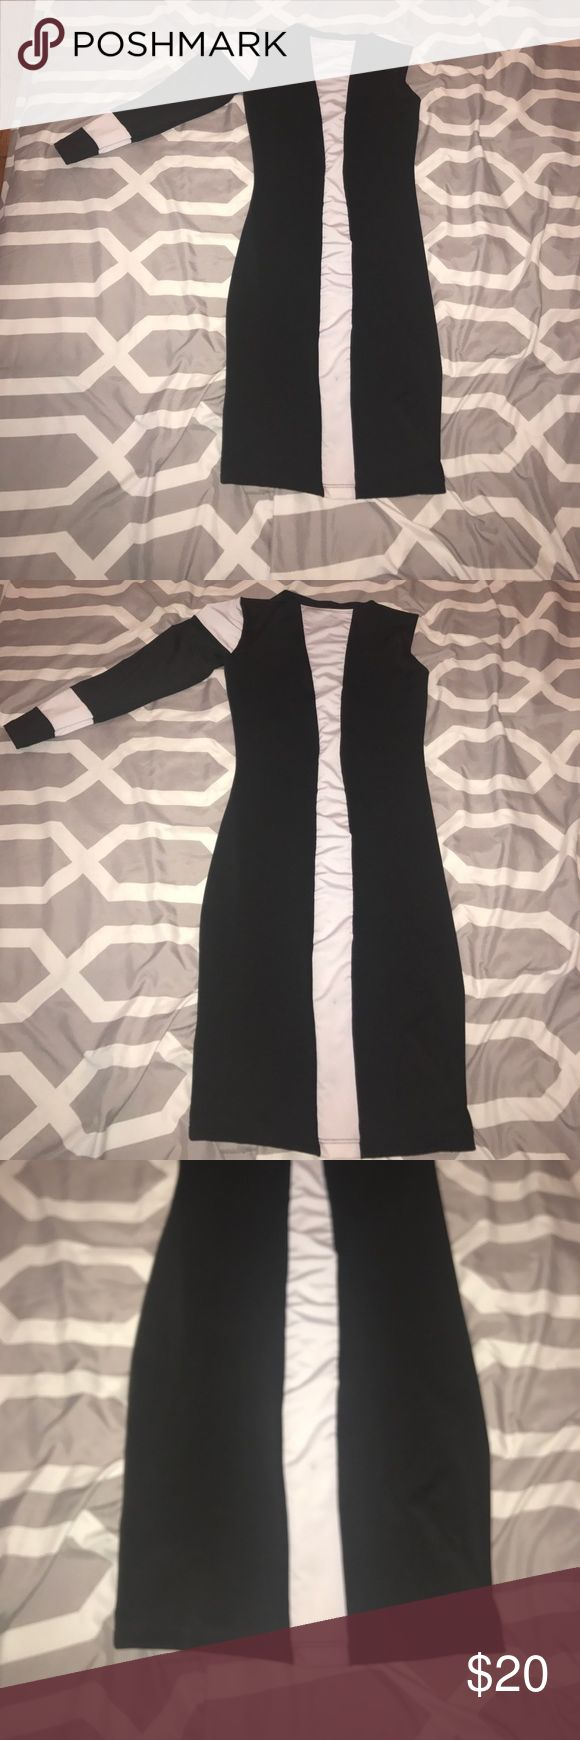 Black and white one sleeve dress Black and white one sleeve dress! I've only worn it once to a party! Dresses Asymmetrical